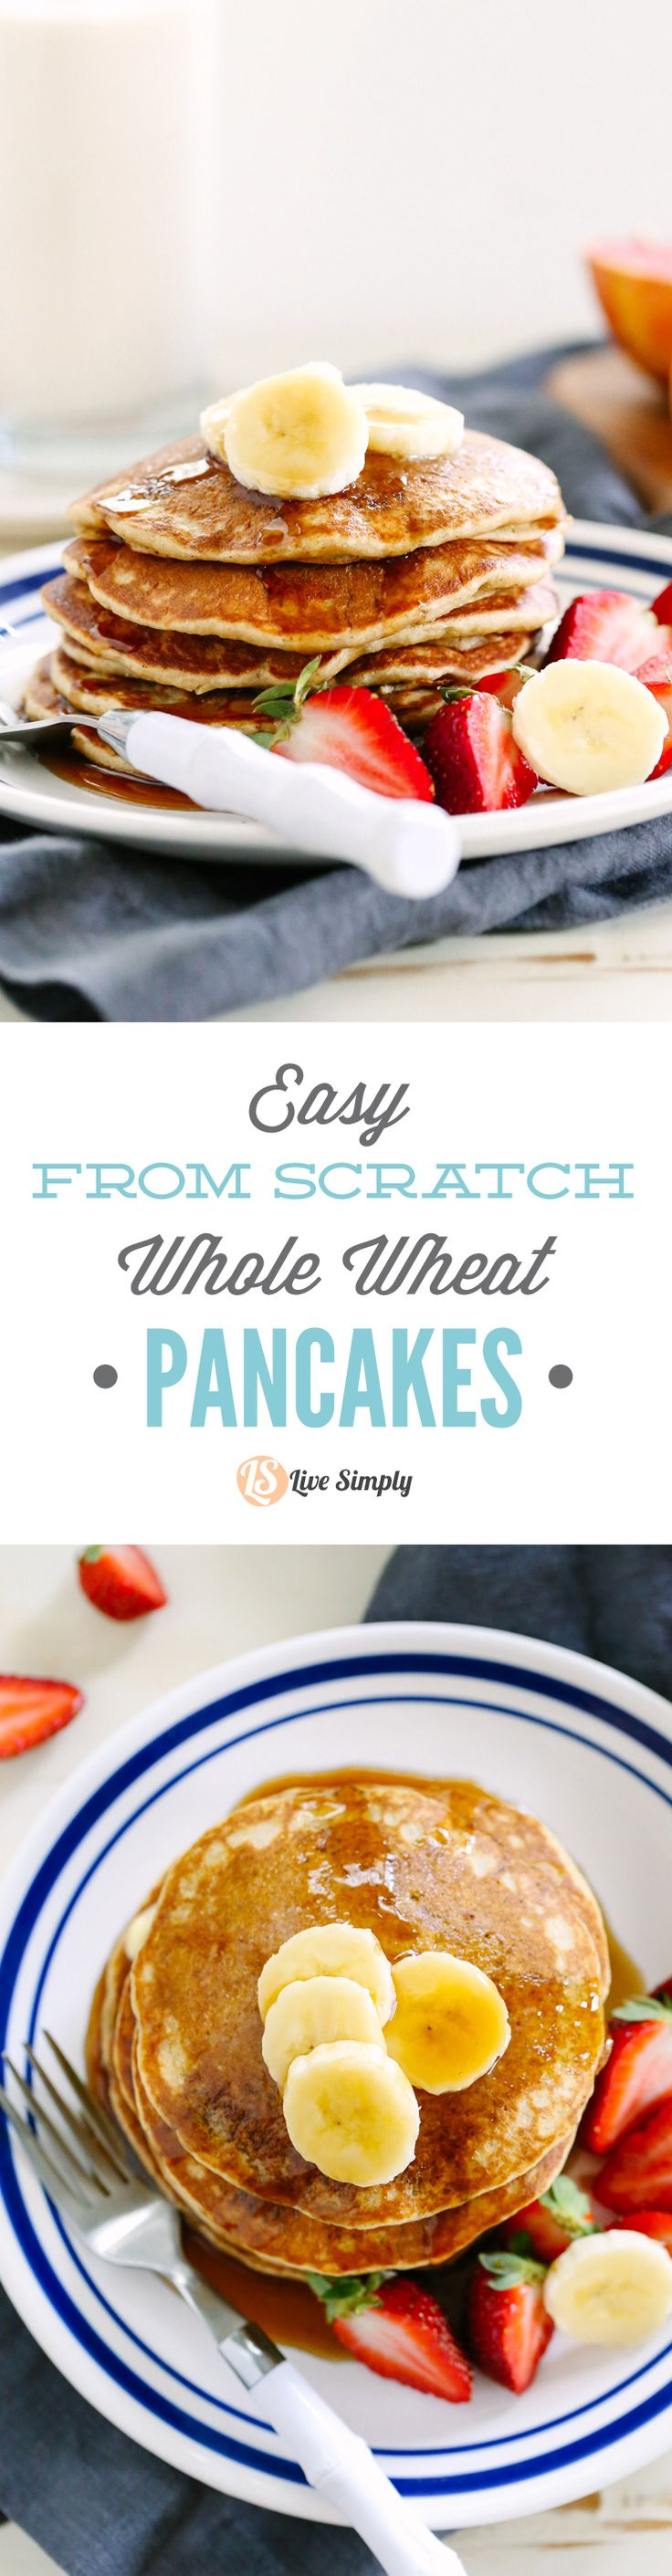 """From scratch"" whole wheat pancakes that taste amazing! No boxed ingredients, just healthy real food. Love this. Make in advance and freeze the extras for busy mornings."